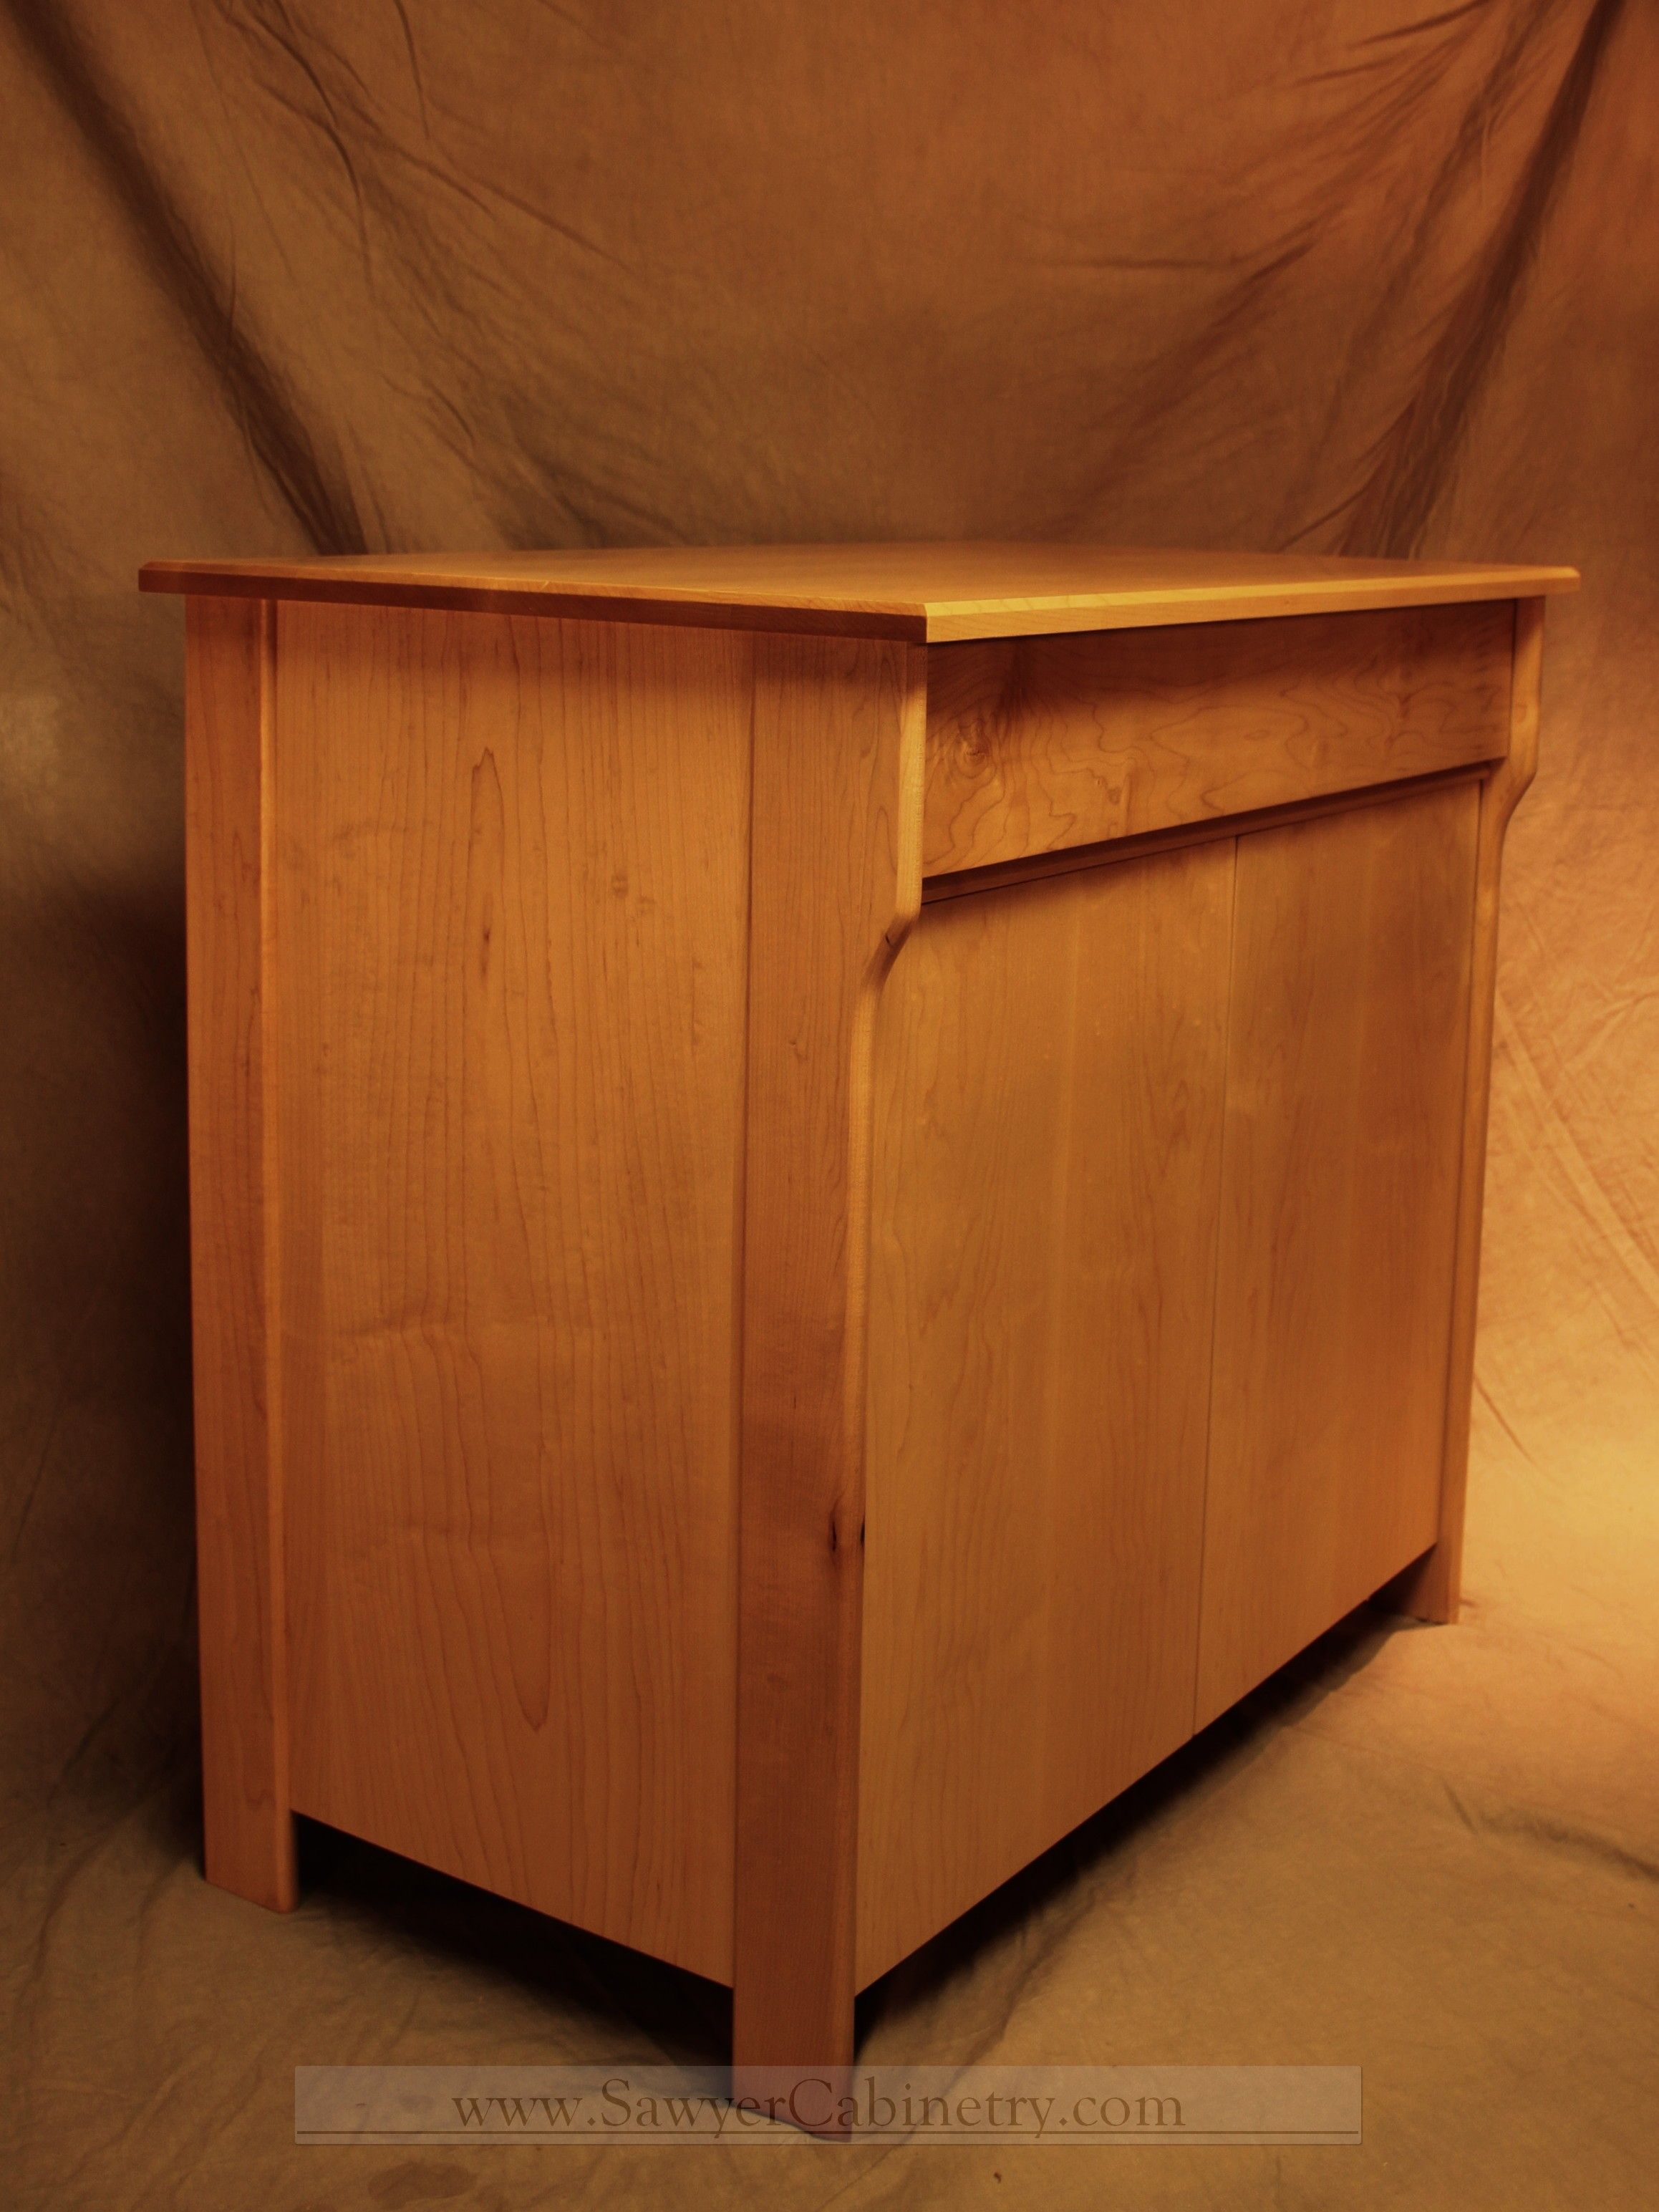 Custom Made Mid Century Modern Retro Stereo Cabinet In Maple